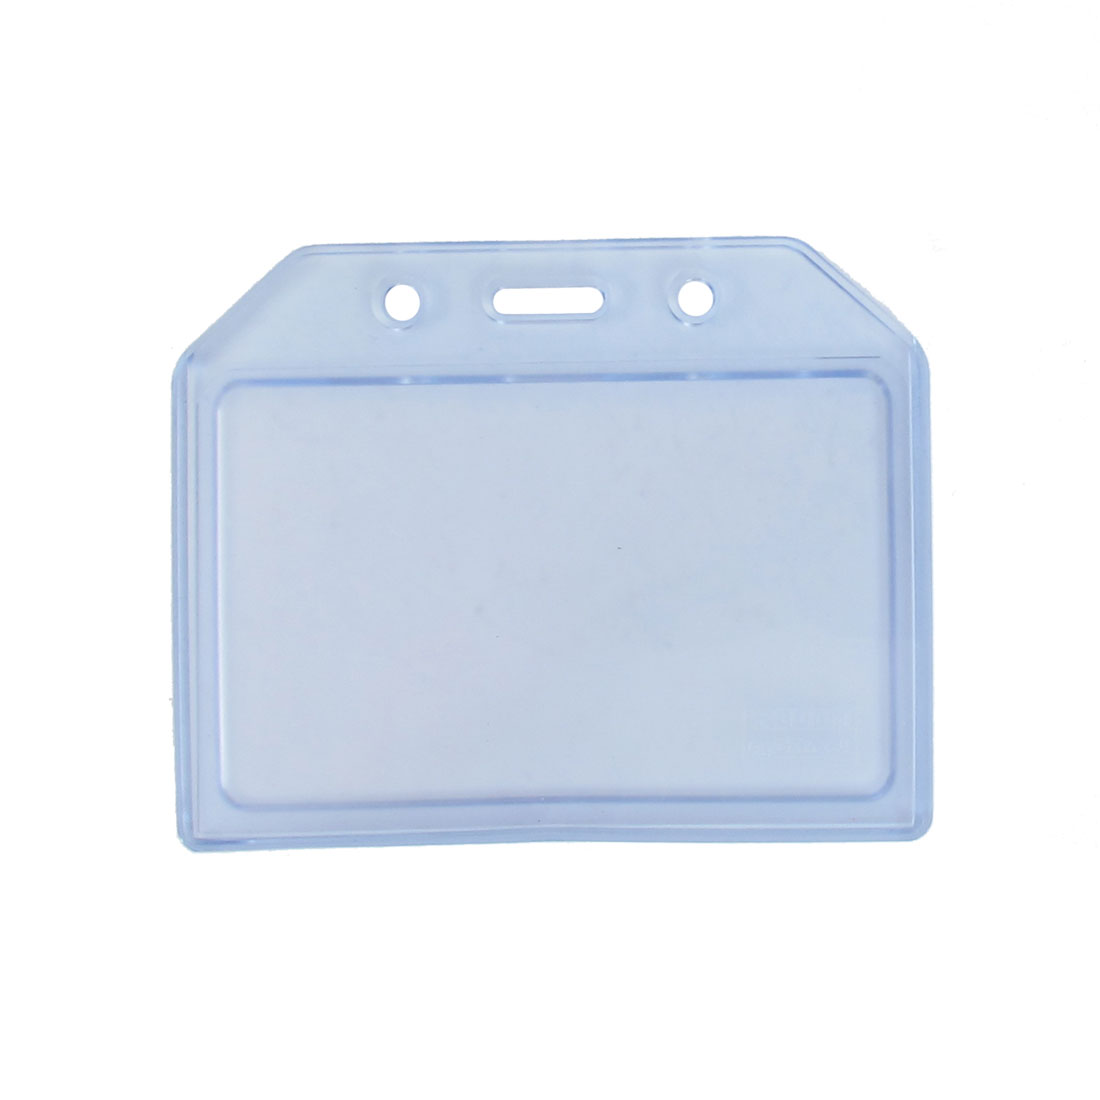 Clear Blue Soft Plastic Horizontal Business Name ID Card Badge Holder Container Cover